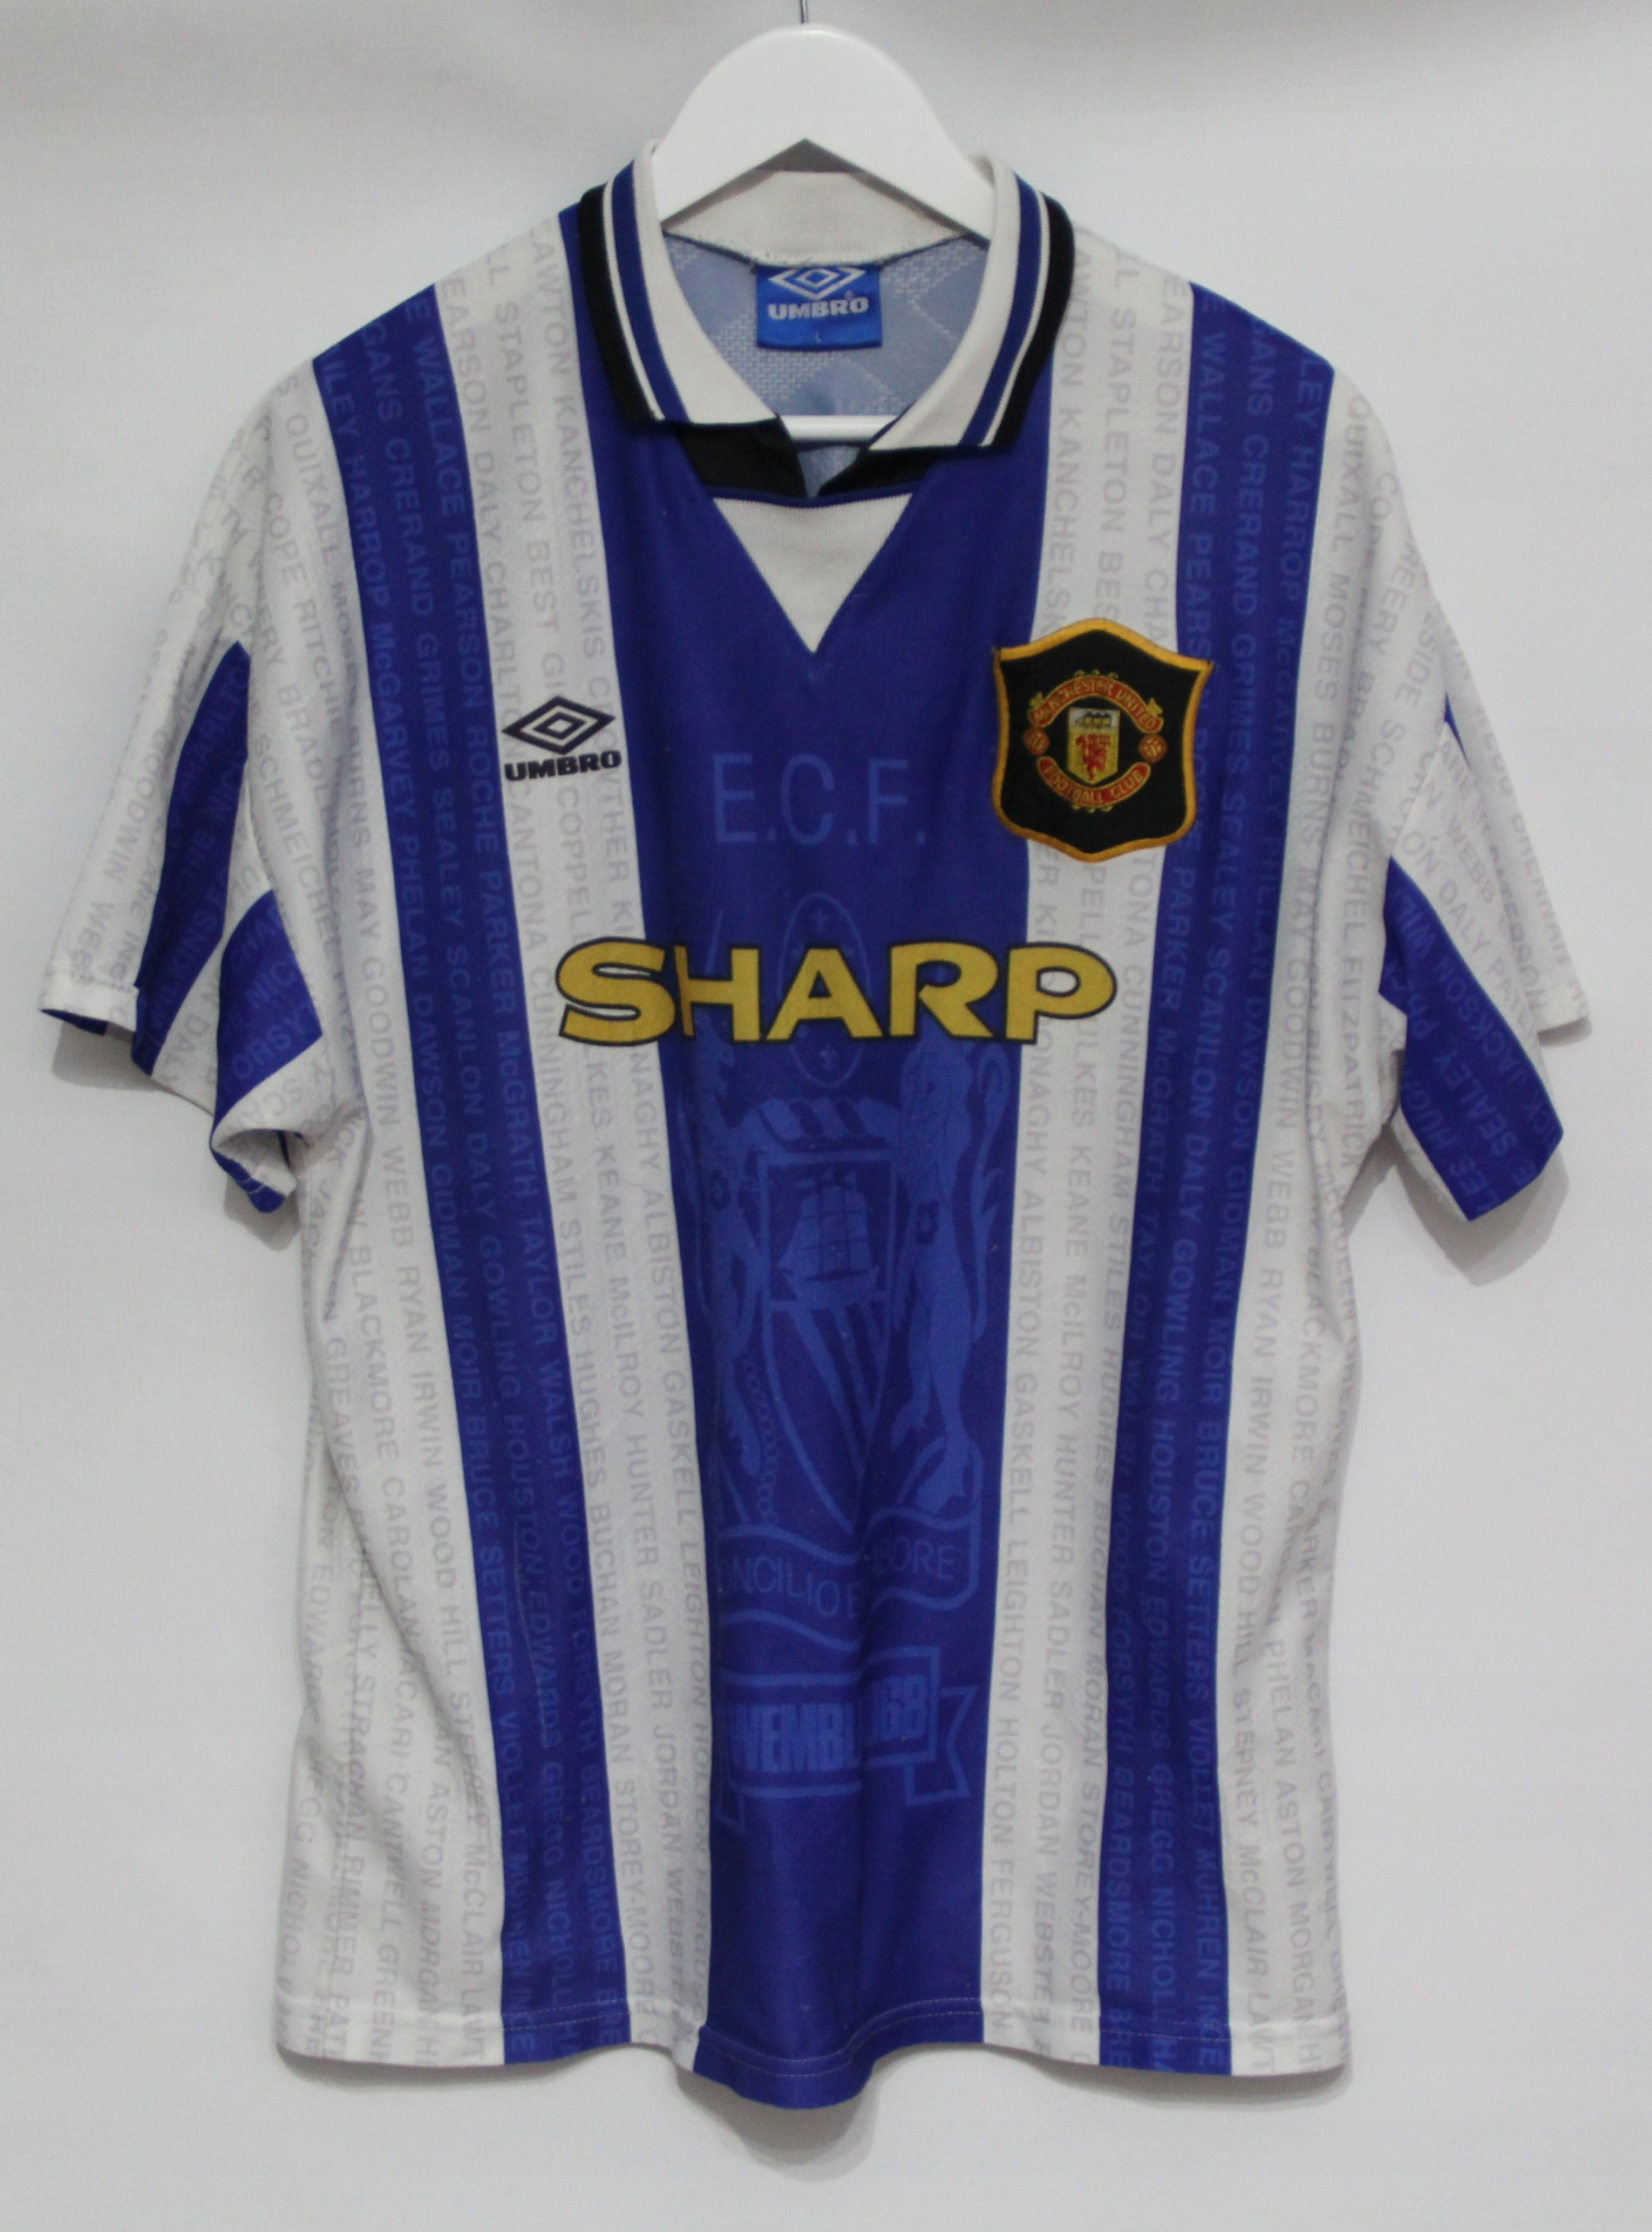 Koszulka Umbro Manchester United SHARP 7 - CANTONA